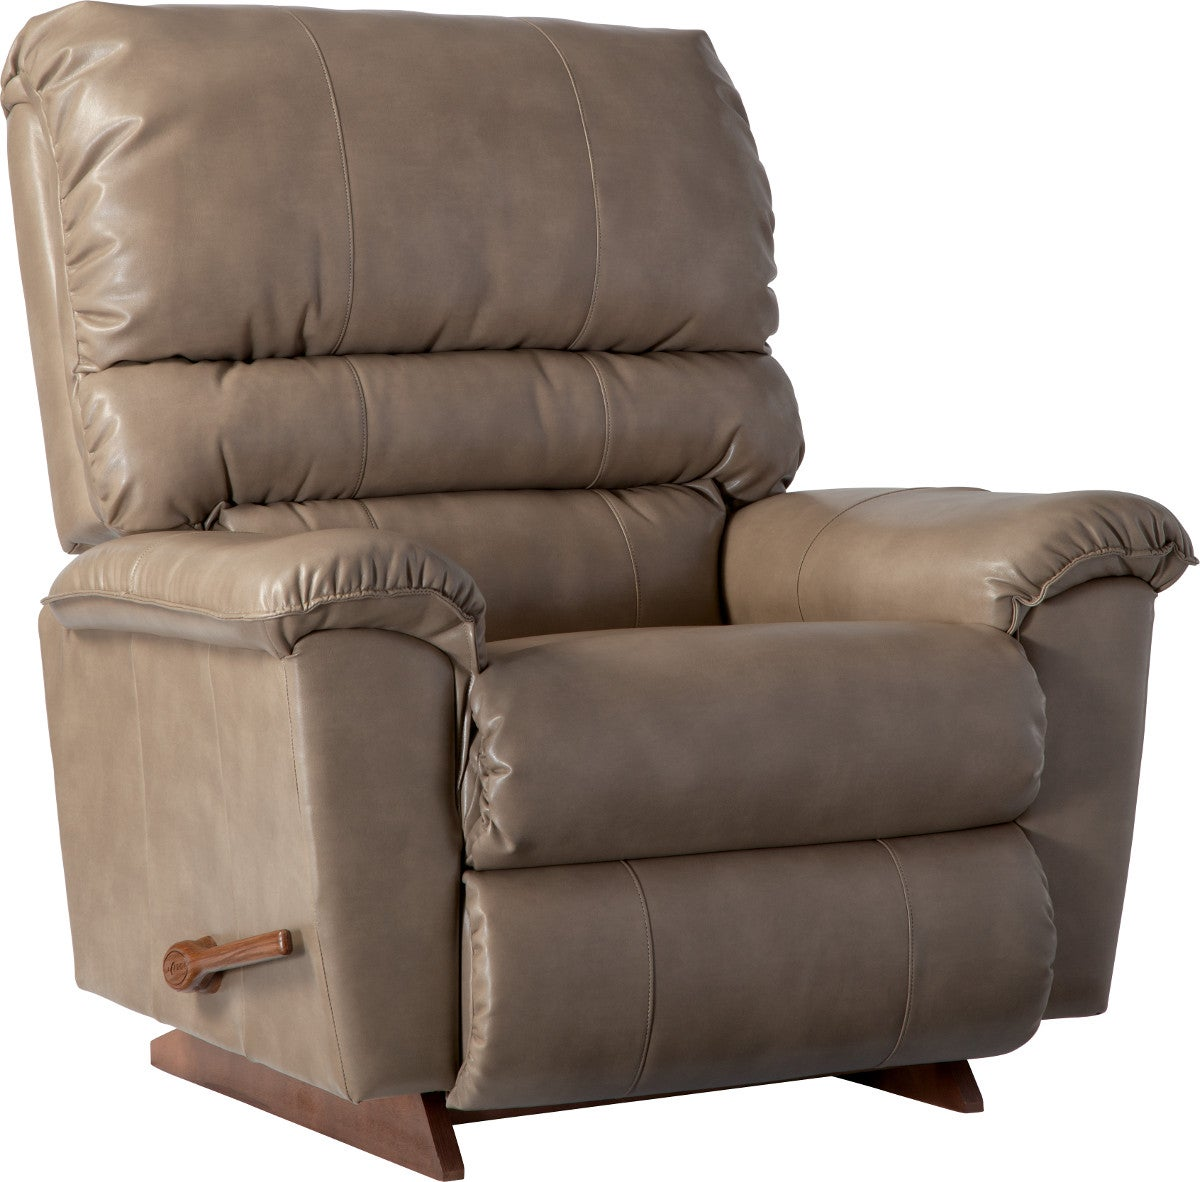 Rocking recliner chairs - Rocking Recliner Chairs 33